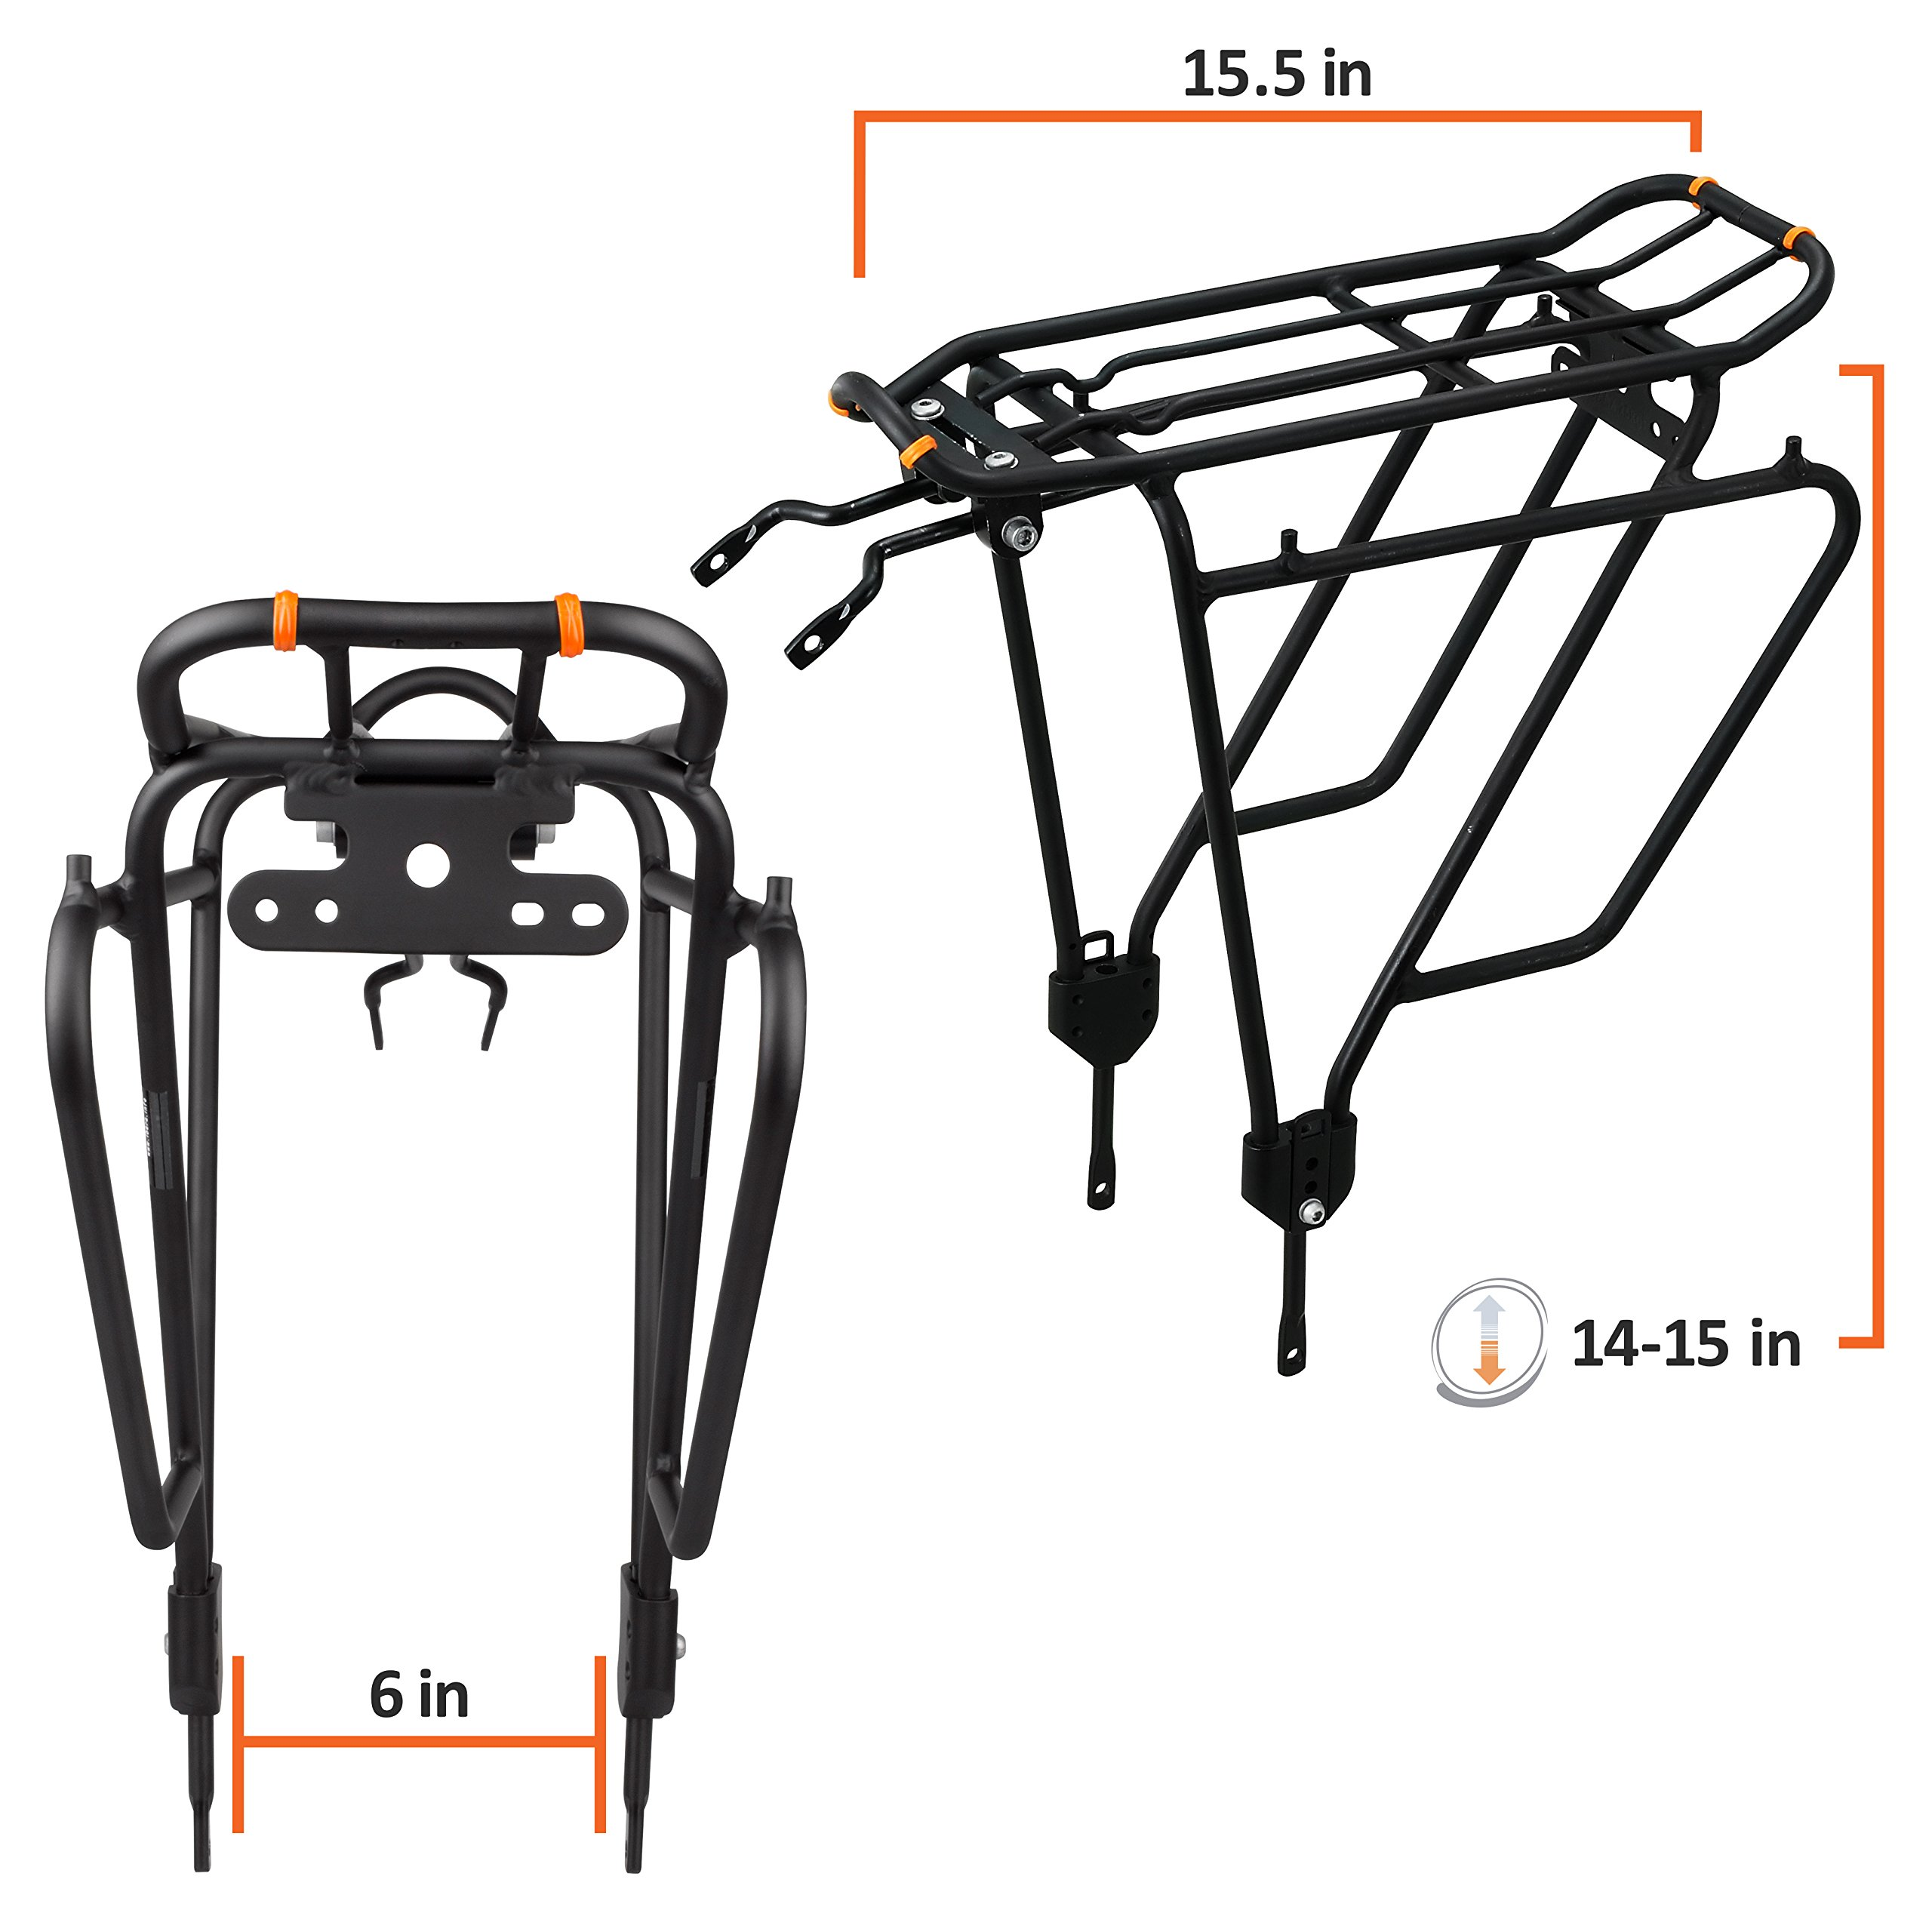 Ibera Bike Rack - Bicycle Touring Carrier Plus+ for Non-Disc Brake Mount, Frame-Mounted for Heavier Top & Side Loads, Height Adjustable for 26''-29'' Frames by Ibera (Image #3)